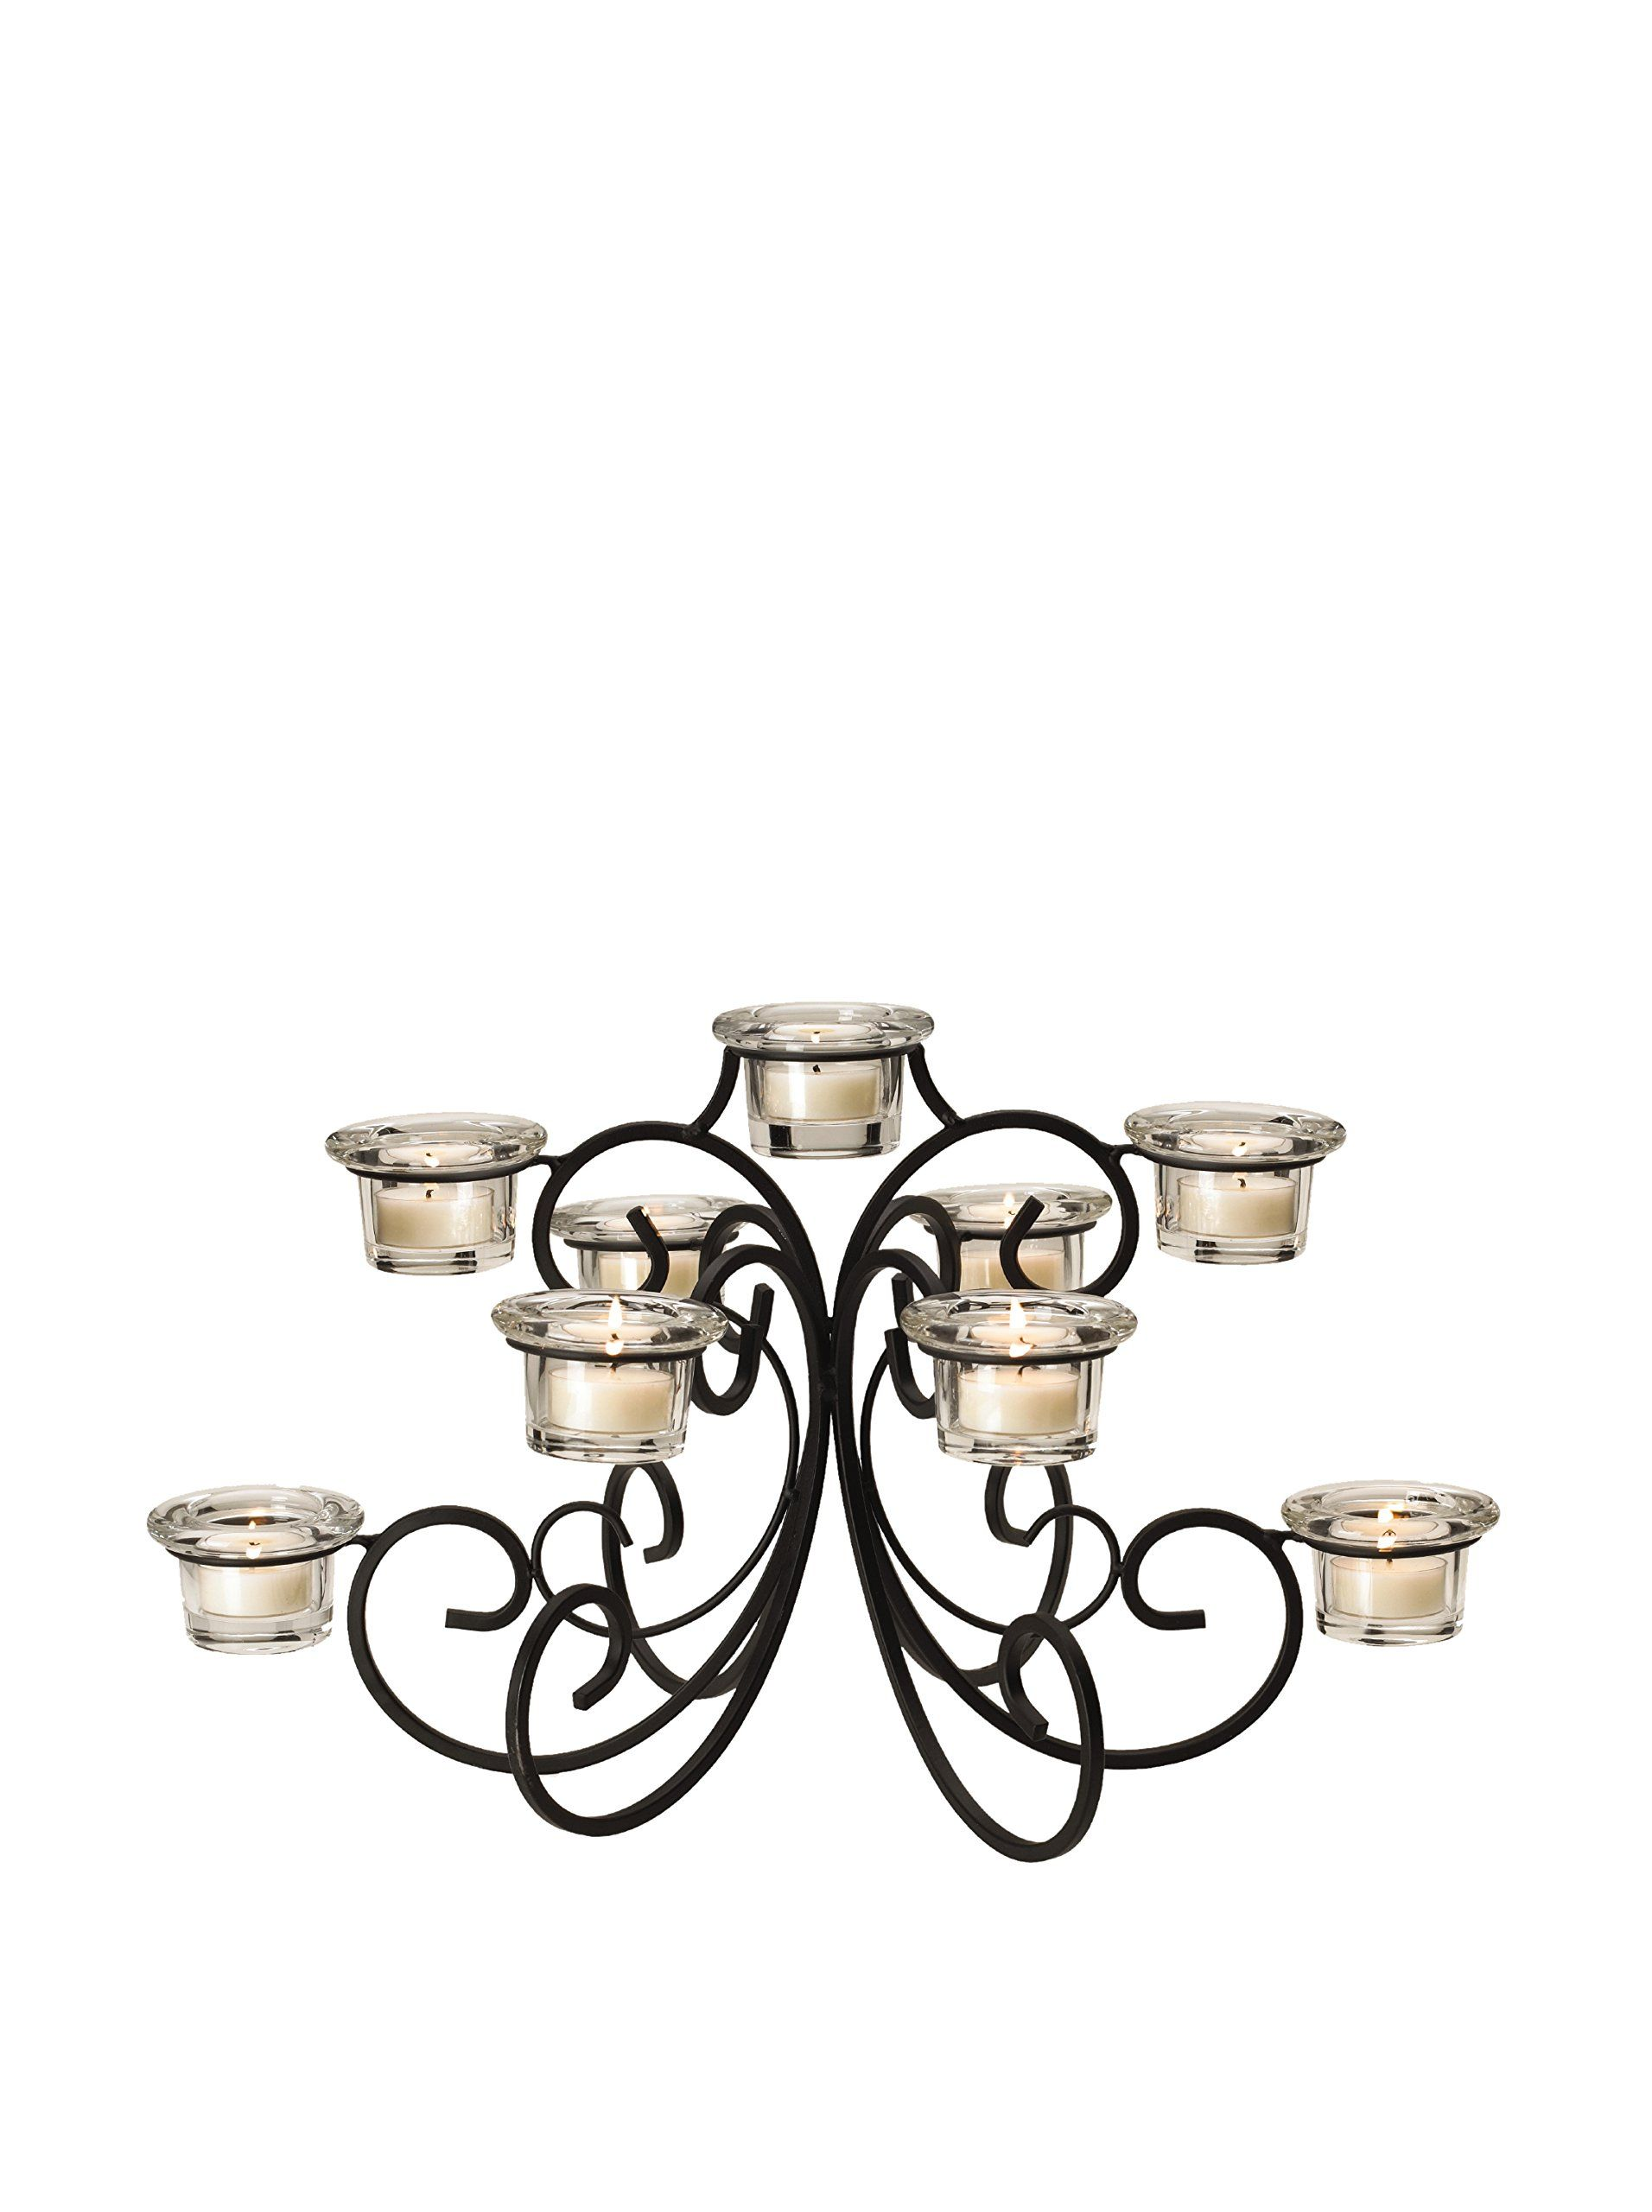 This beautiful Mikasa tealight centerpiece casts a warm ambient light in any room while also bringing a sophisticated touch of elegance to your home.  sc 1 st  Pinterest & Mikasa 9-Tealight Waterfall Centerpiece 18-Inch at MYHABIT ... azcodes.com